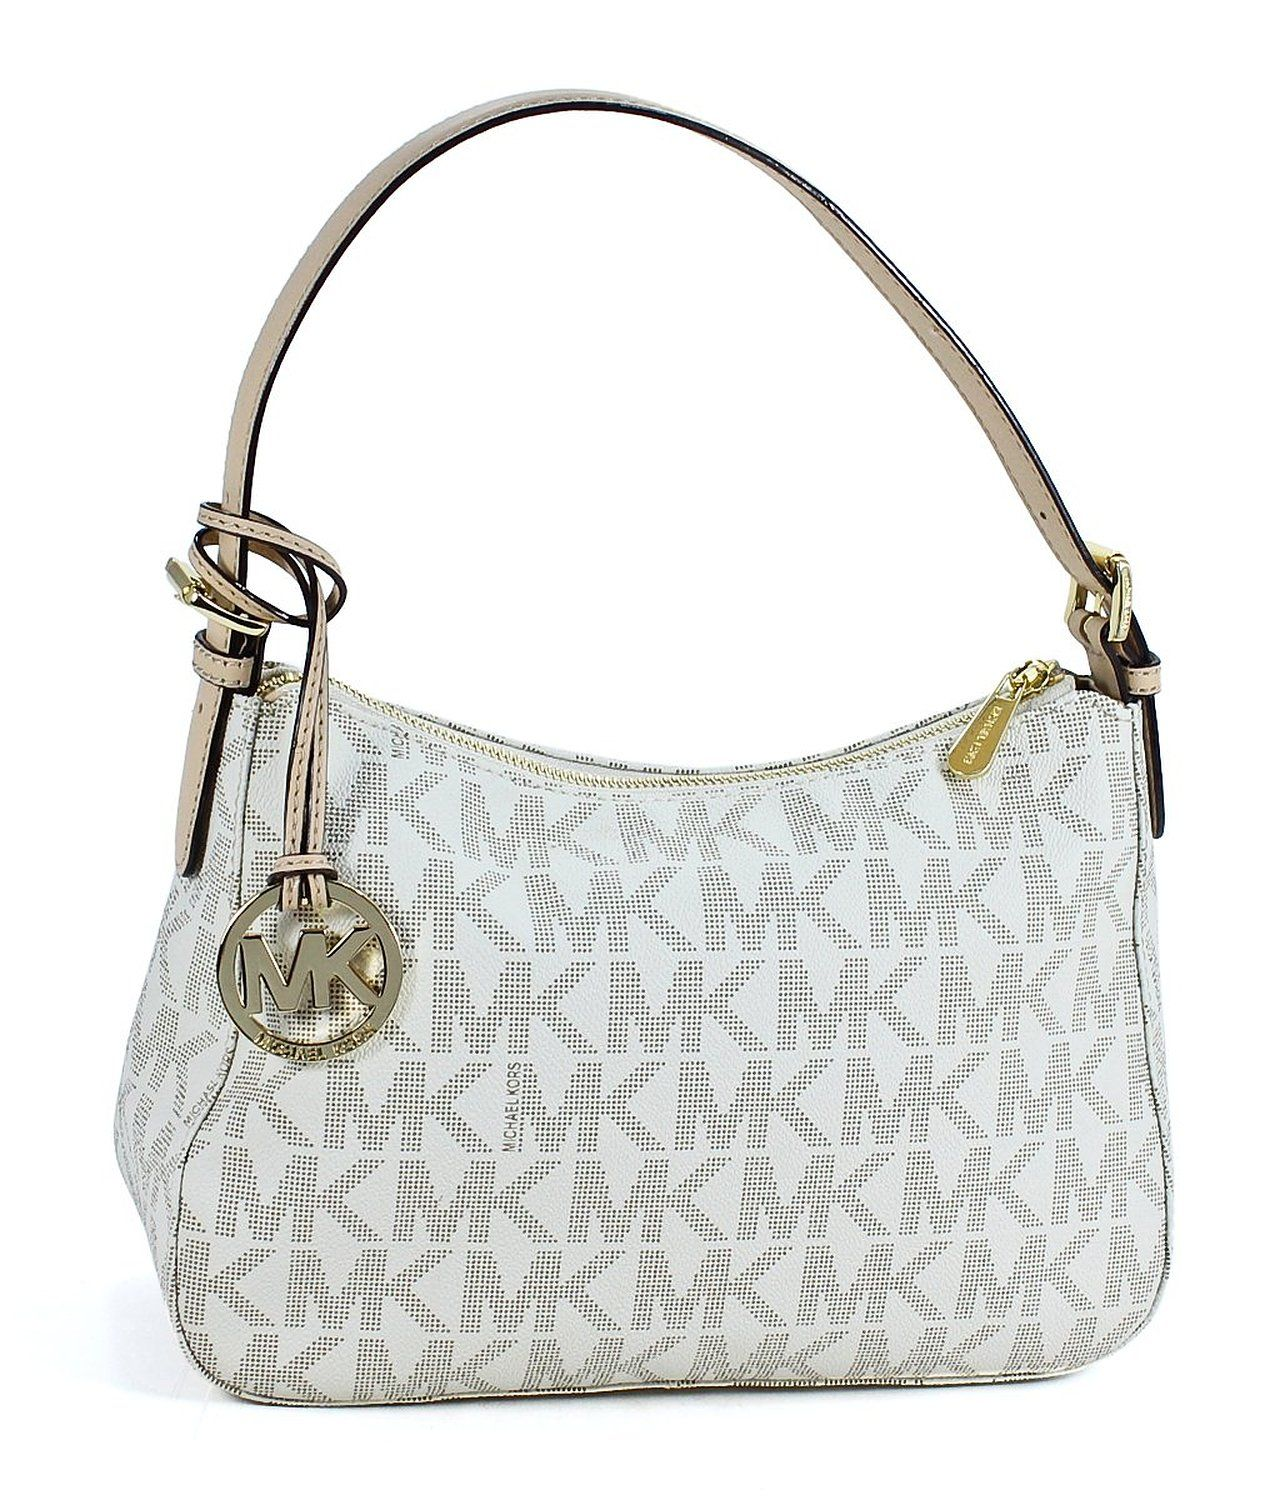 576afe1721 Michael Kors Jet Set Signature   Review more details here - amazon  affiliated pin